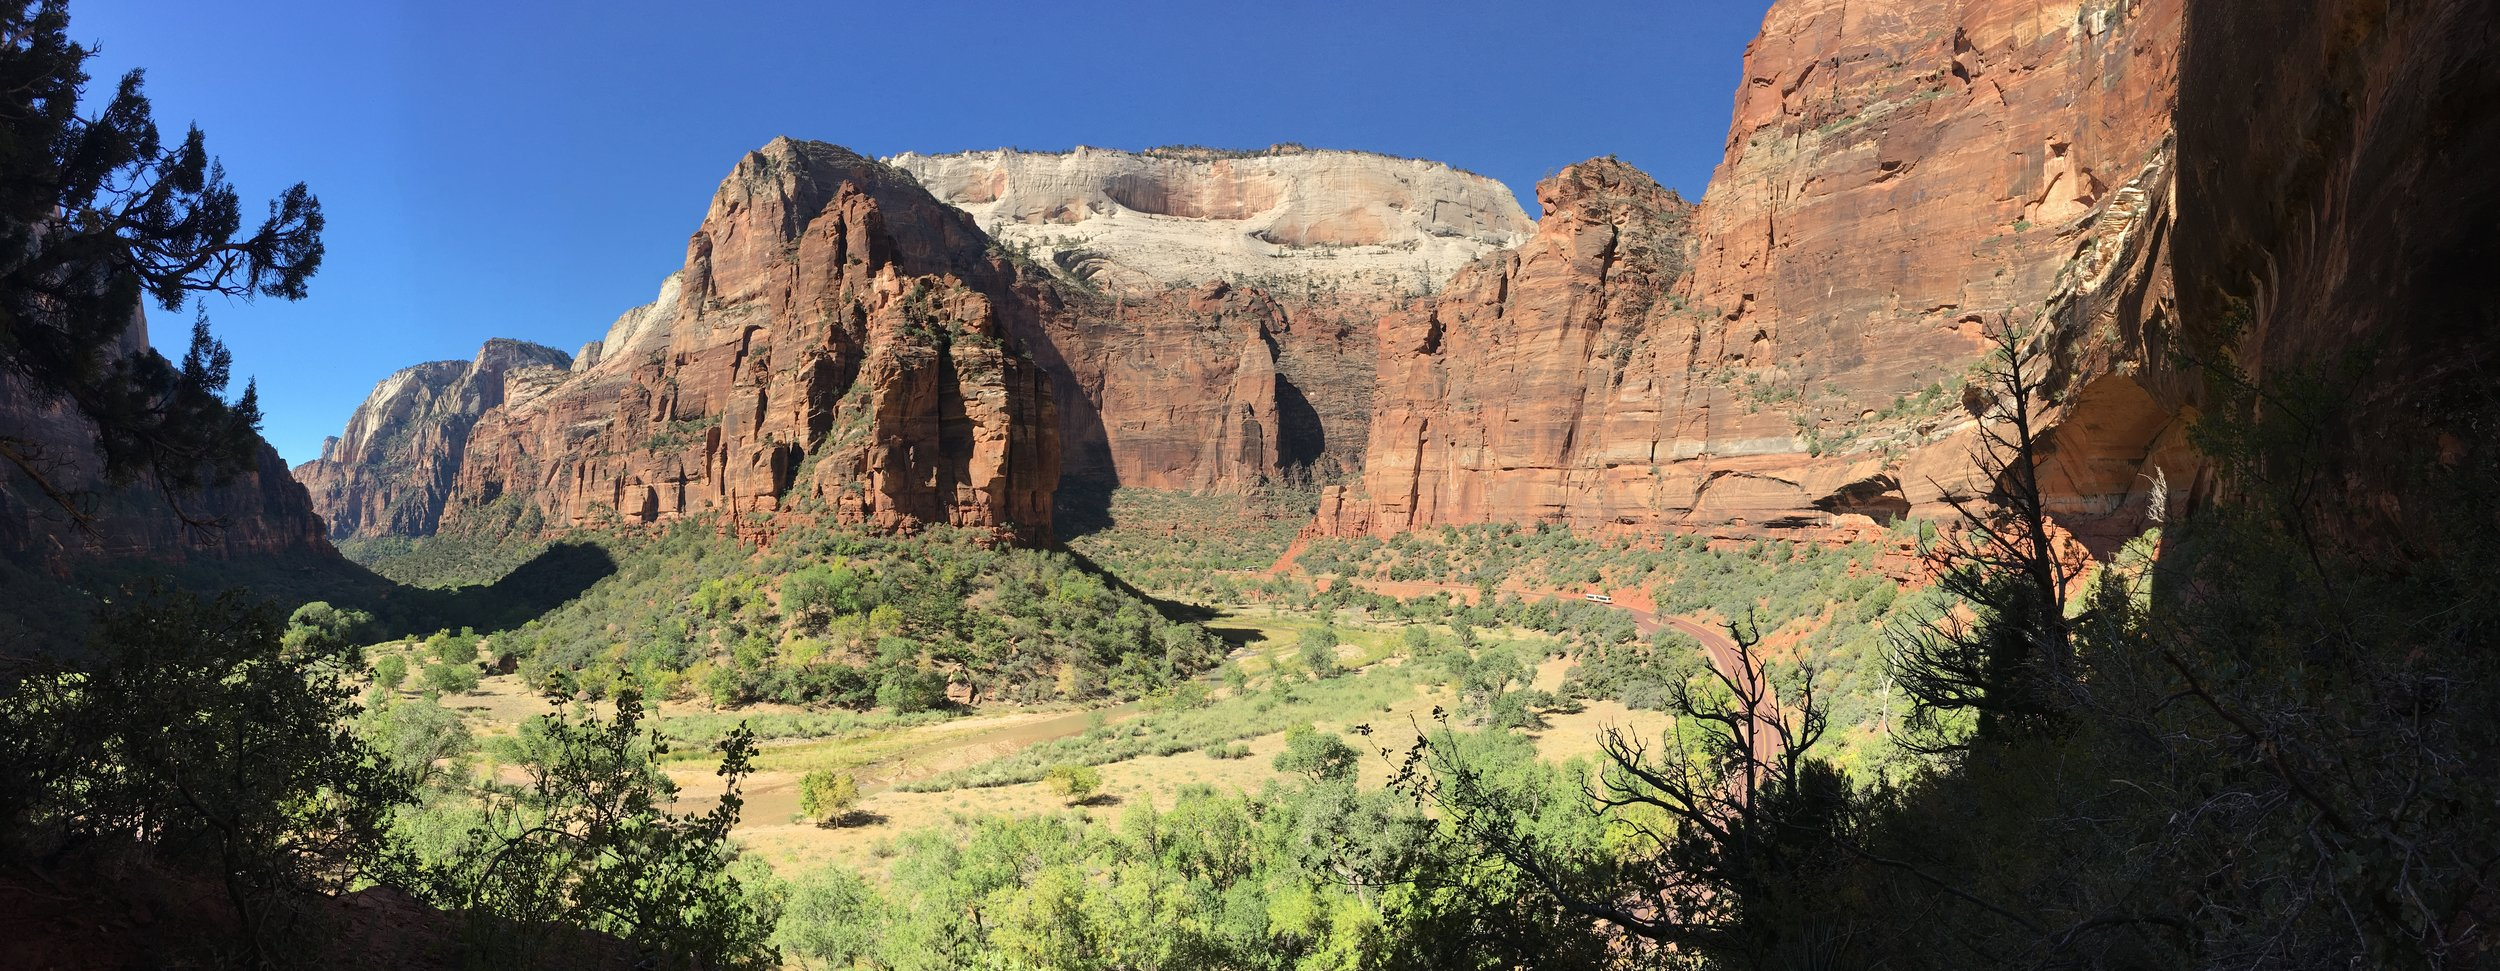 Our view A bend in the Virgin River.  Zion National Park